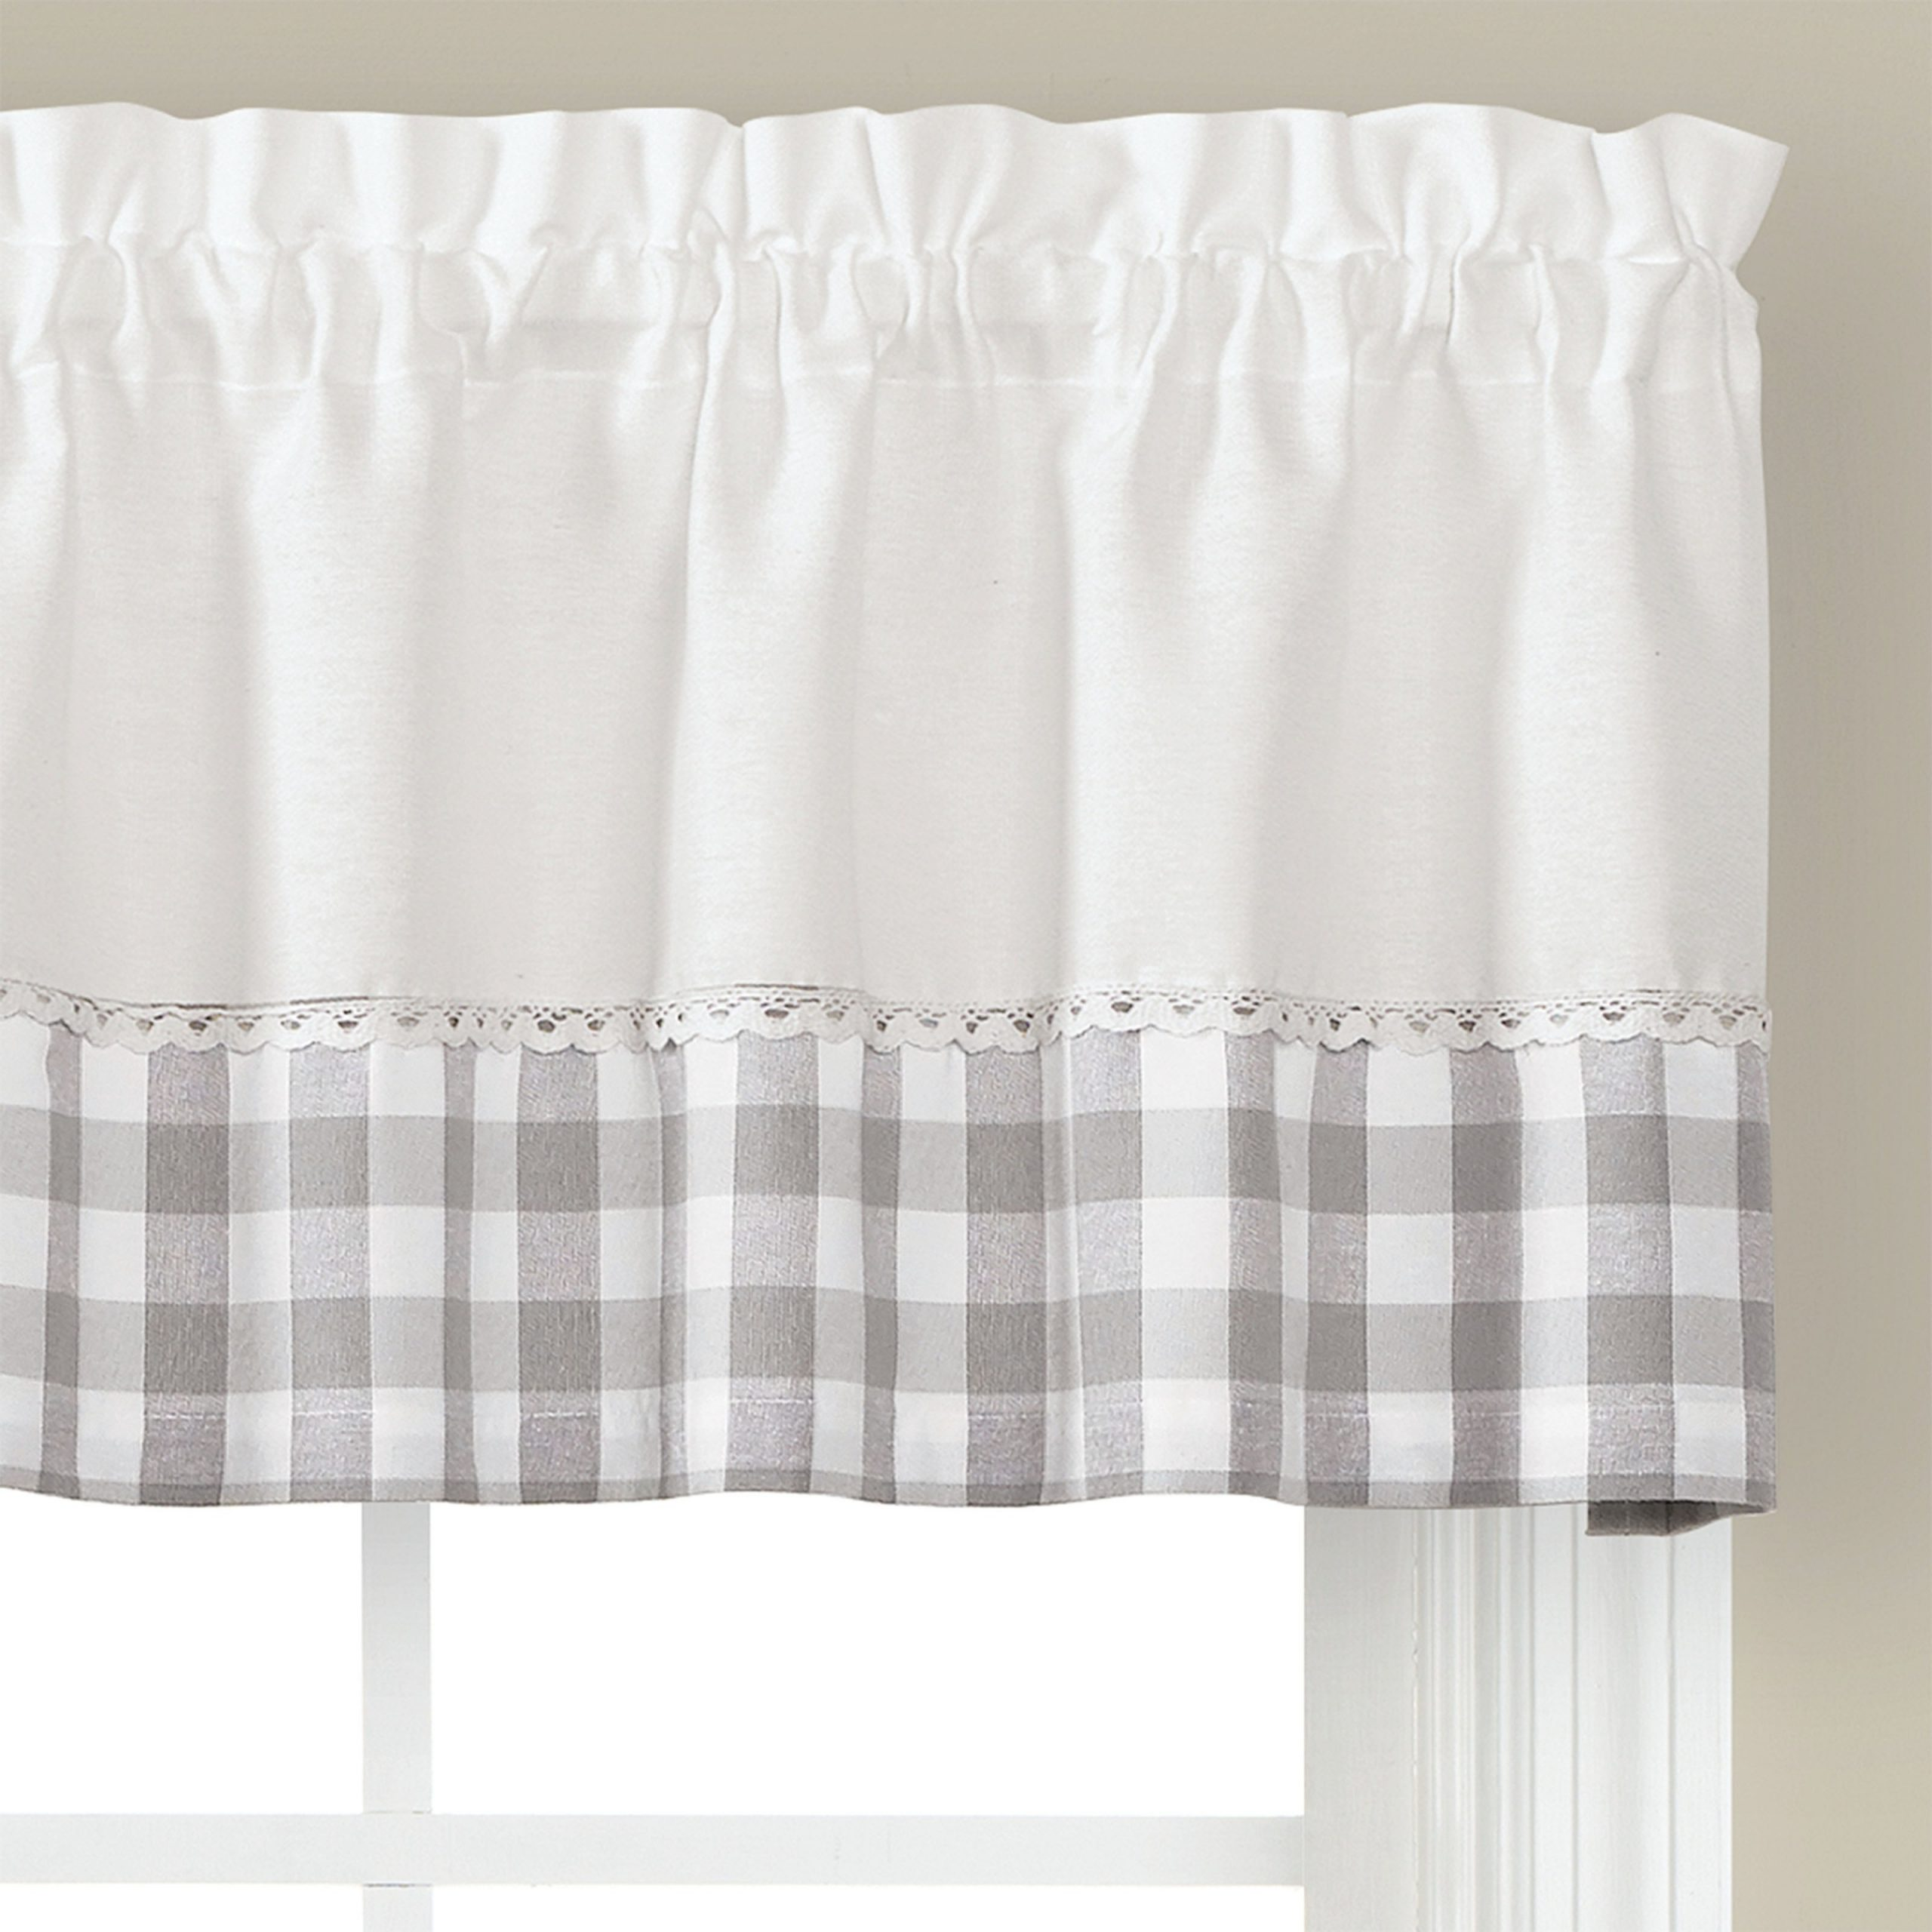 Widely Used Cumberland Tier Pairs In Dove Gray Intended For Skl Home Cumberland 13 Inch Valance In Dove Gray (View 4 of 20)